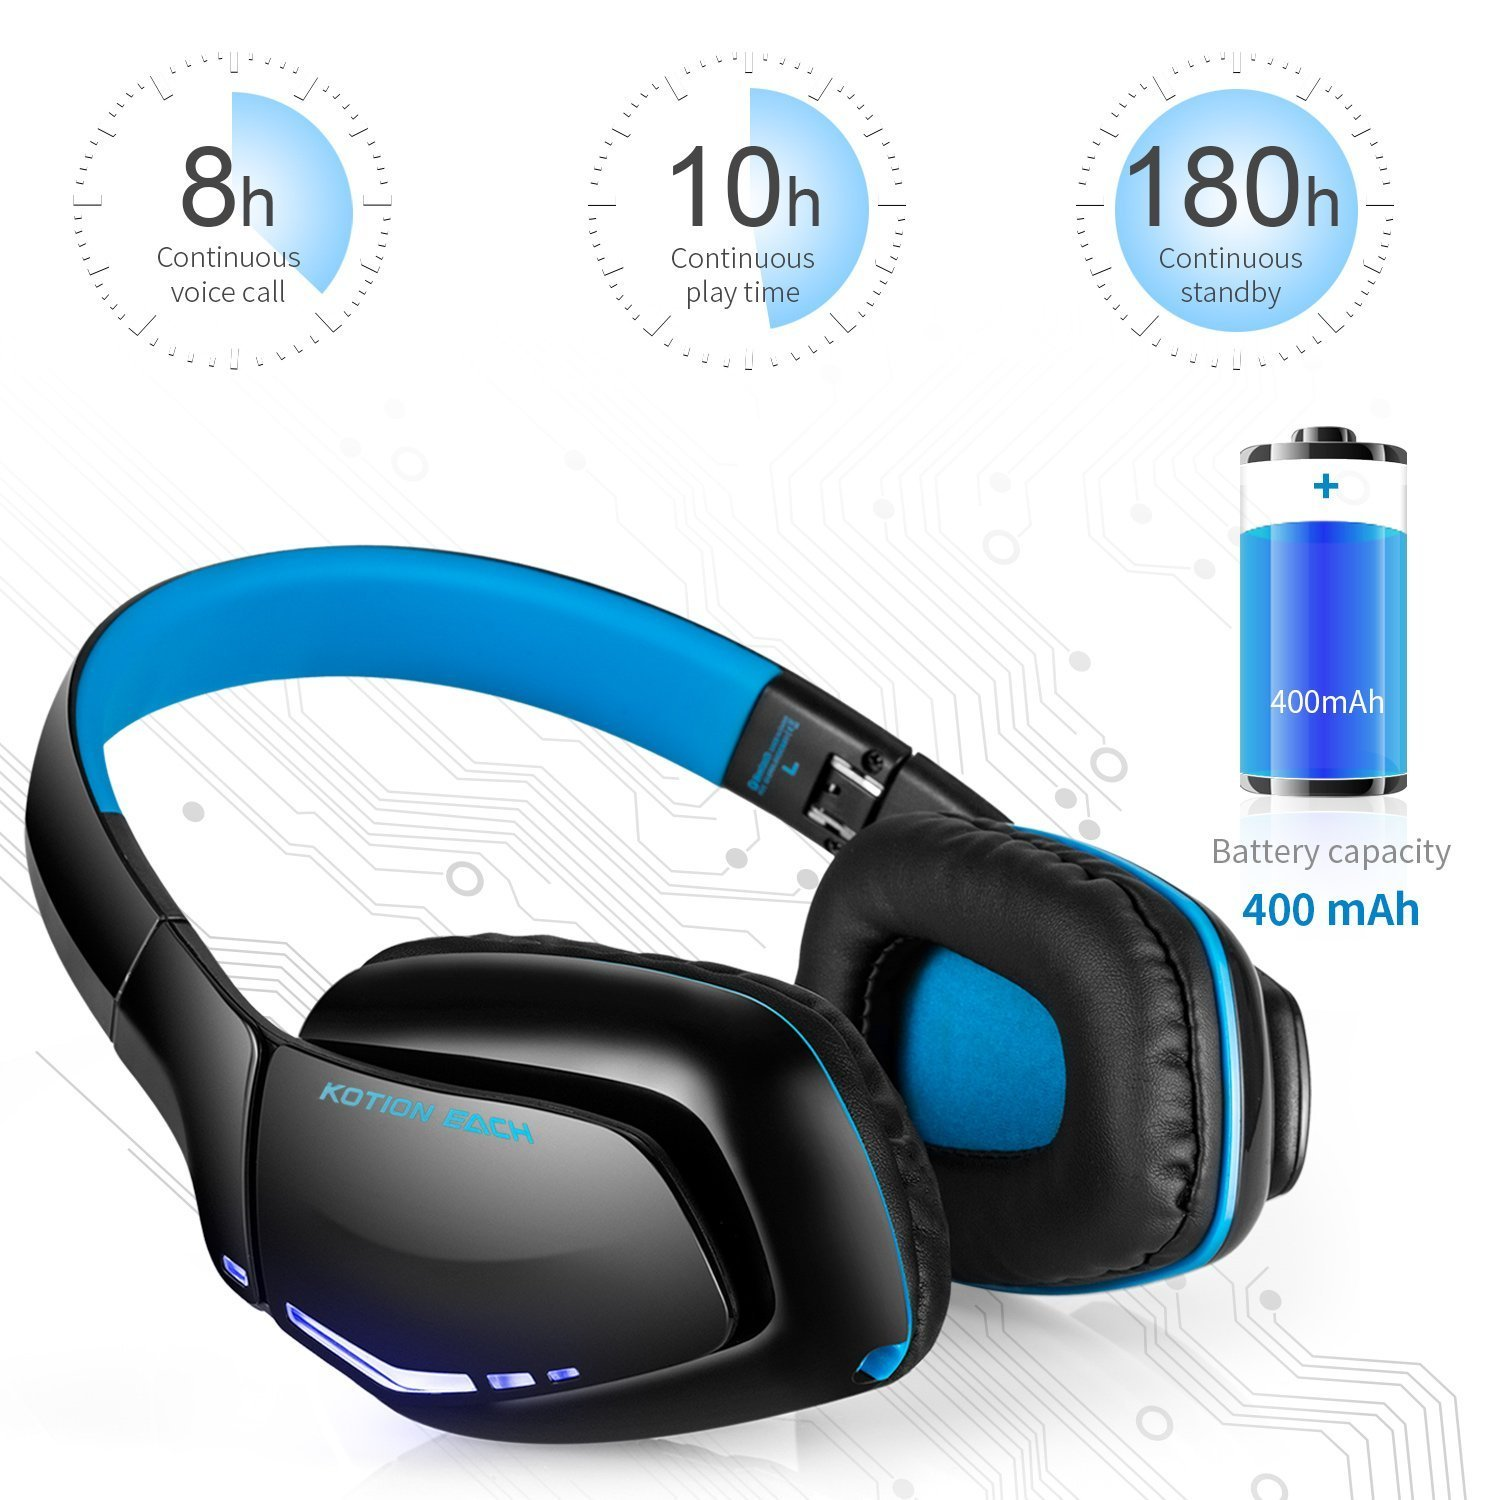 ZaKitane KOTION EACH B3506 Bluetooth Headphones for PS4 XBOX ONE S, Wireless Headset Foldable Gaming Headset V4.1 with Mic for Playstation 4 PC Mac Smartphones Computers (Blue)